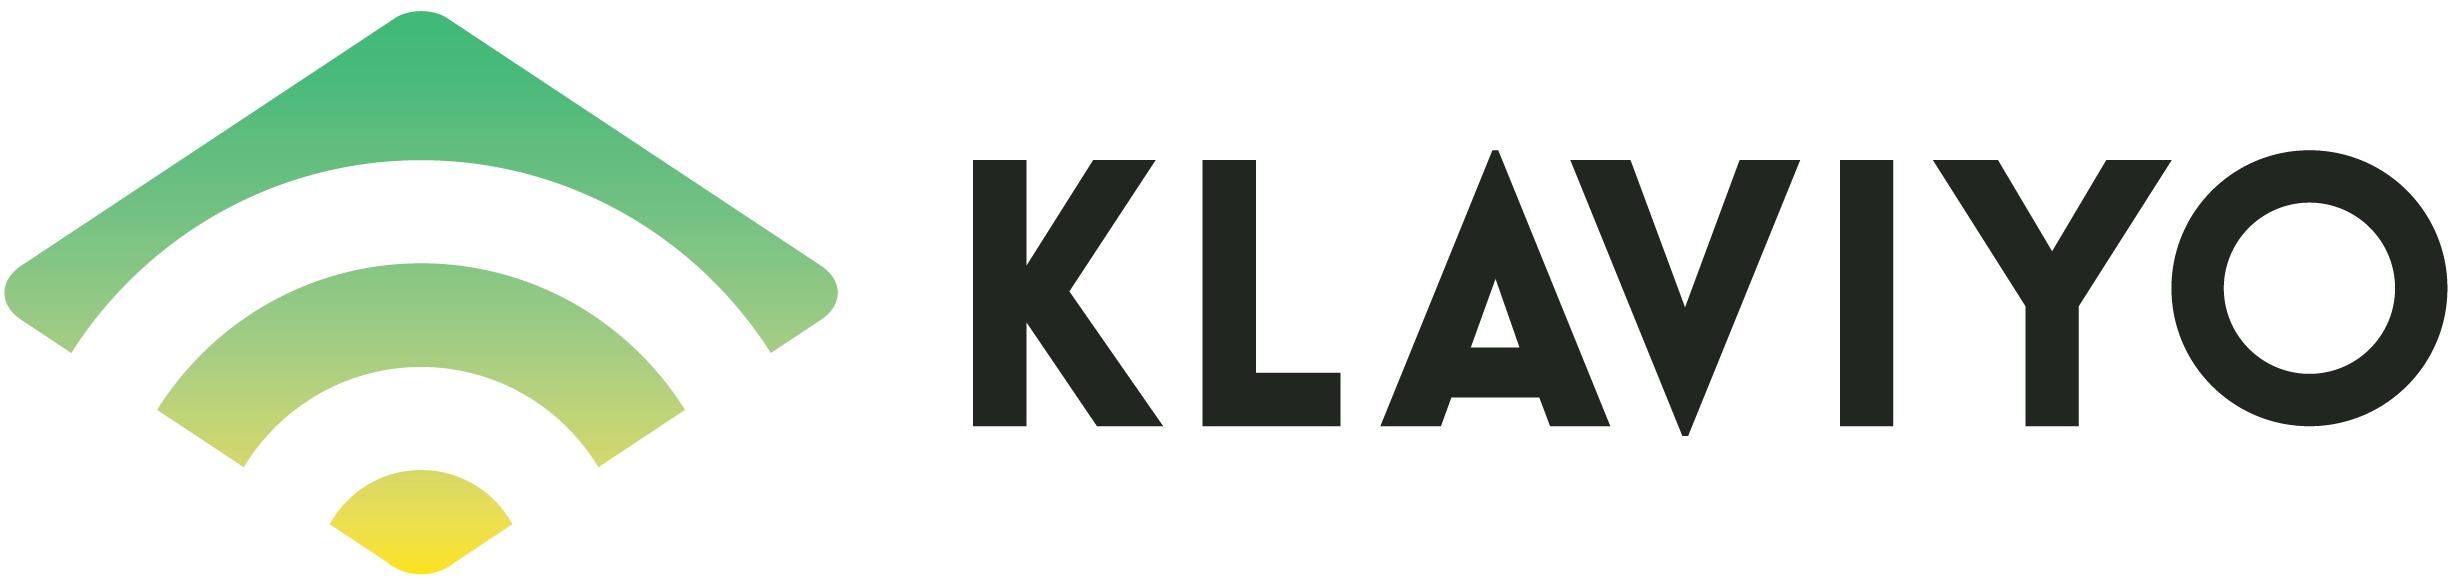 klaviyo-integration-logo